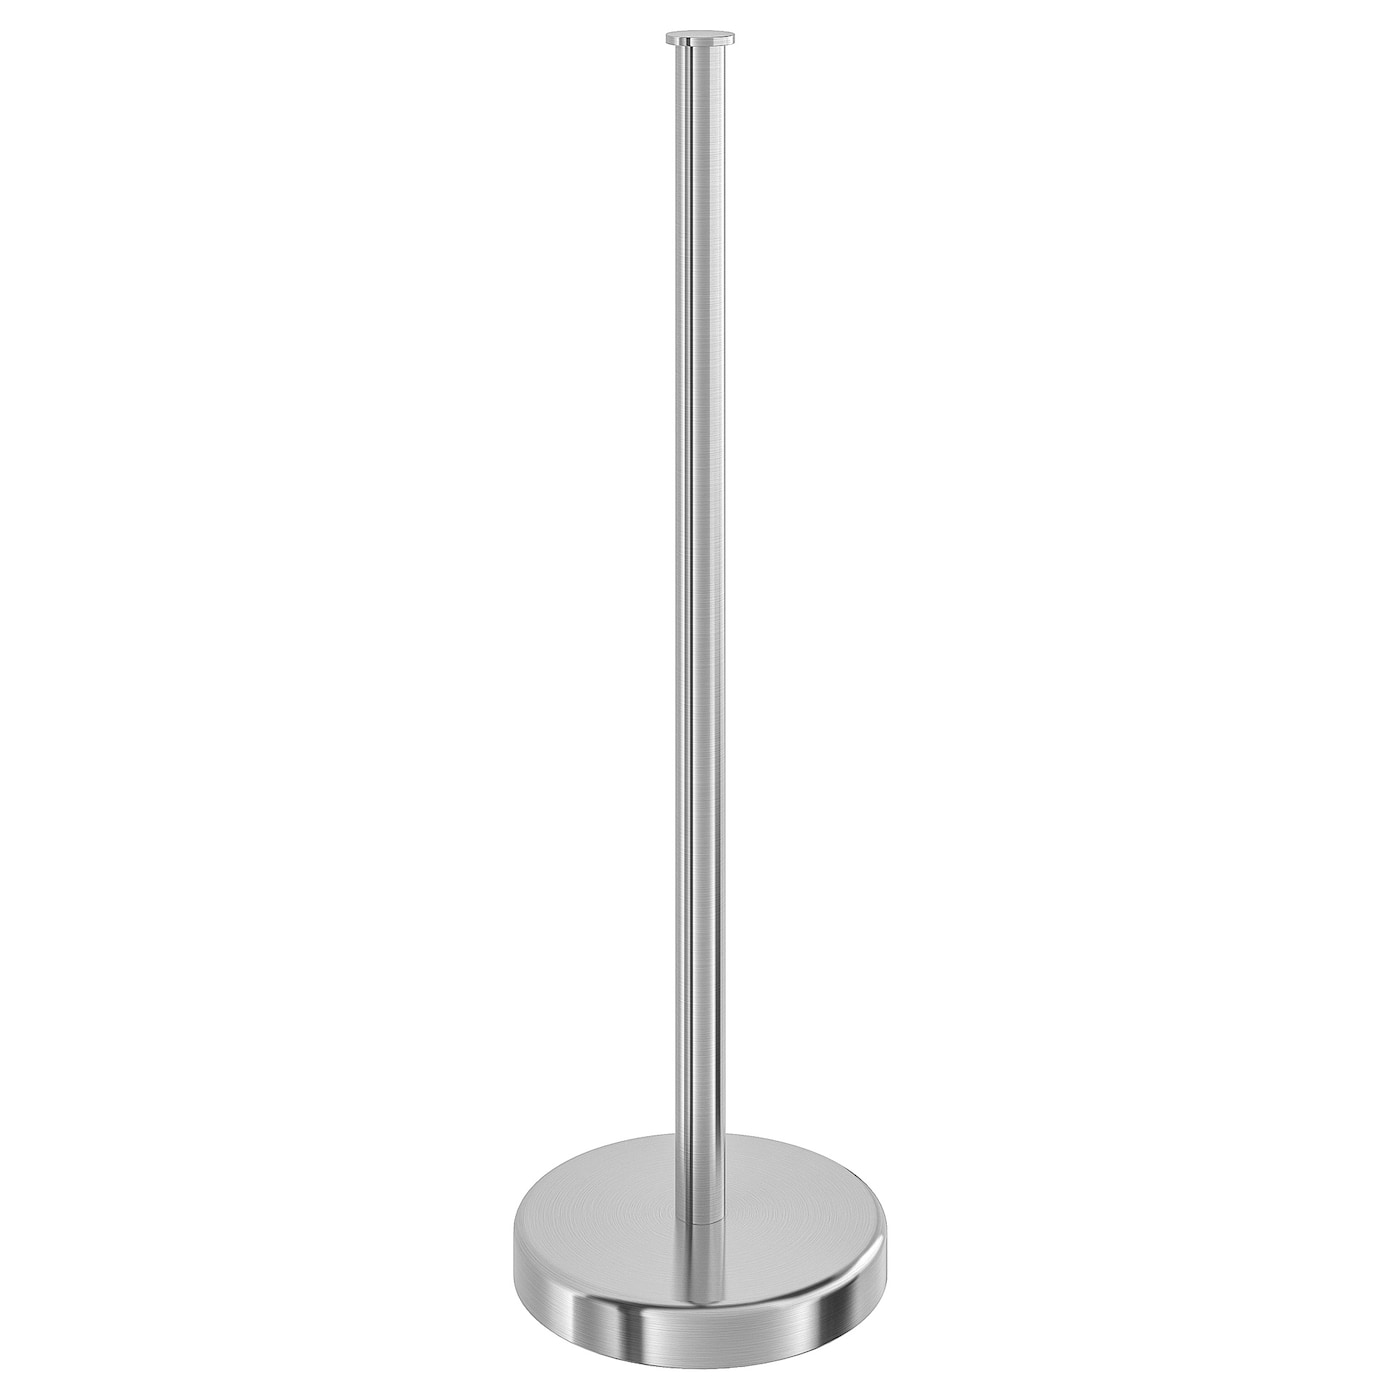 IKEA BROGRUND toilet roll stand Made from stainless steel that is durable and easy to clean.